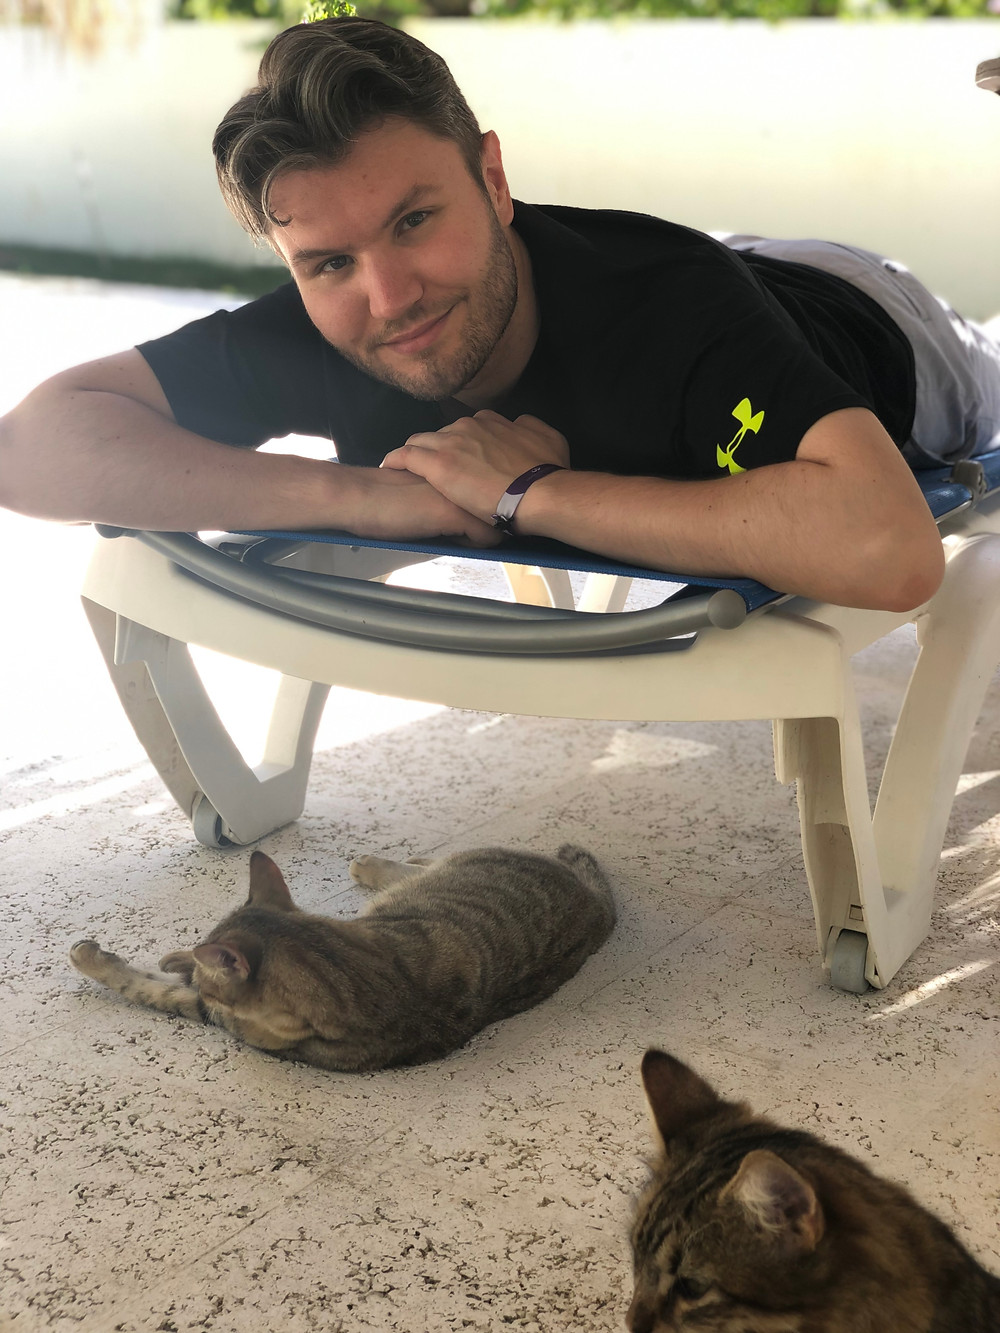 Petting Cats Near the Pool